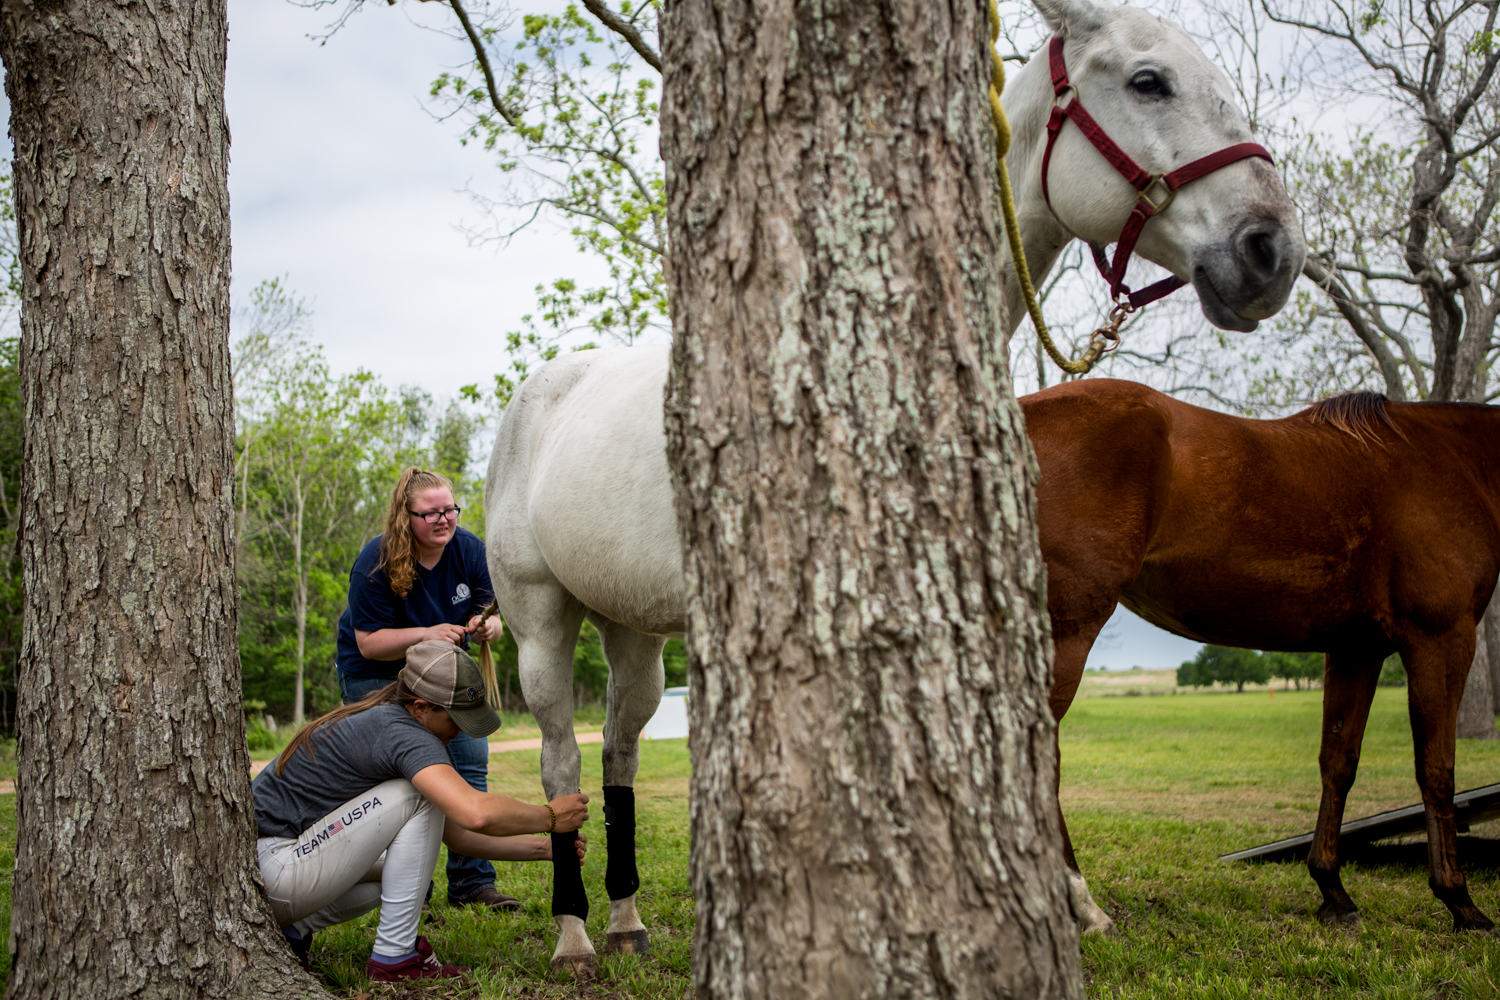 Hudspeth and her groom Erica wrap the horses' legs before a charity polo match in McFaddin, Texas, a small unincorporated community near Victoria, Texas. The wraps, made of fleece, are used to protect the horses legs and to provide support during games.